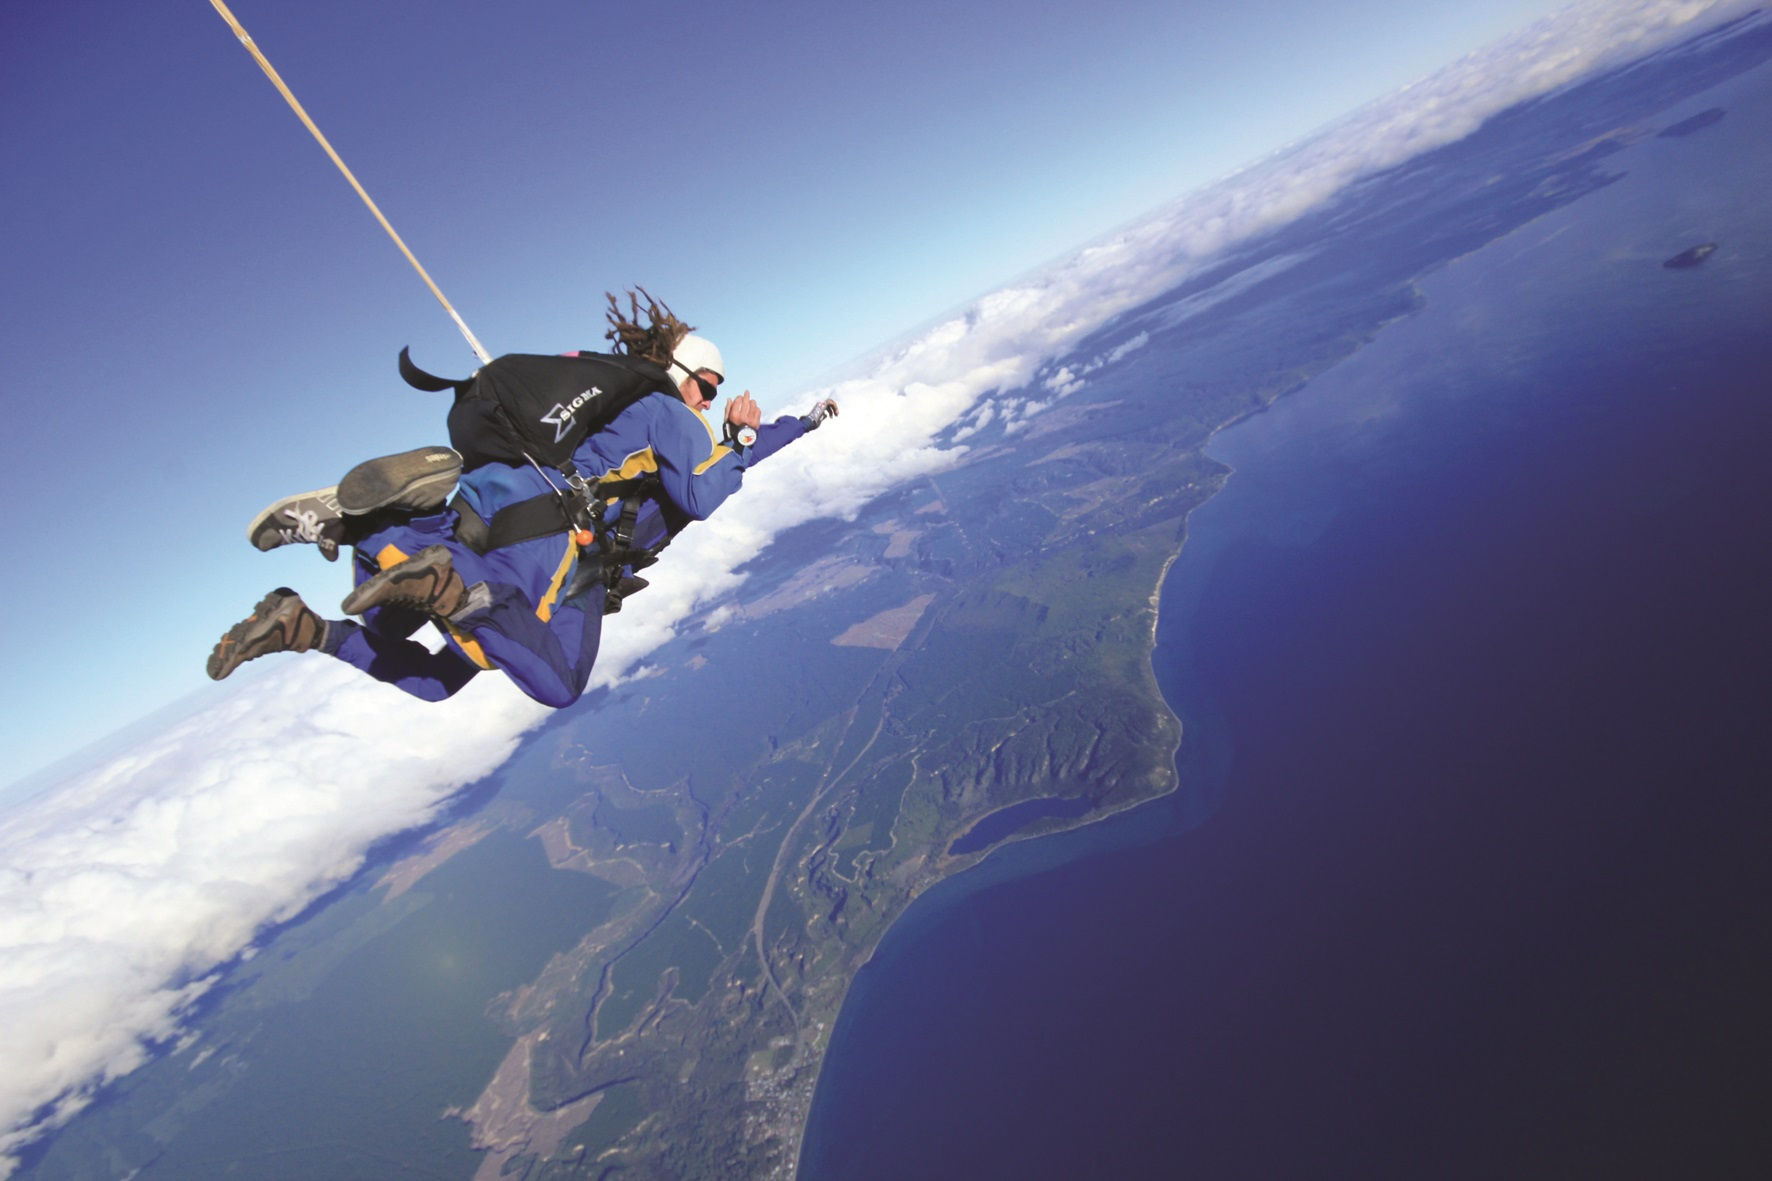 explore NZ Tandem free fall sky diving with 15,000 feet at Lake Taupo